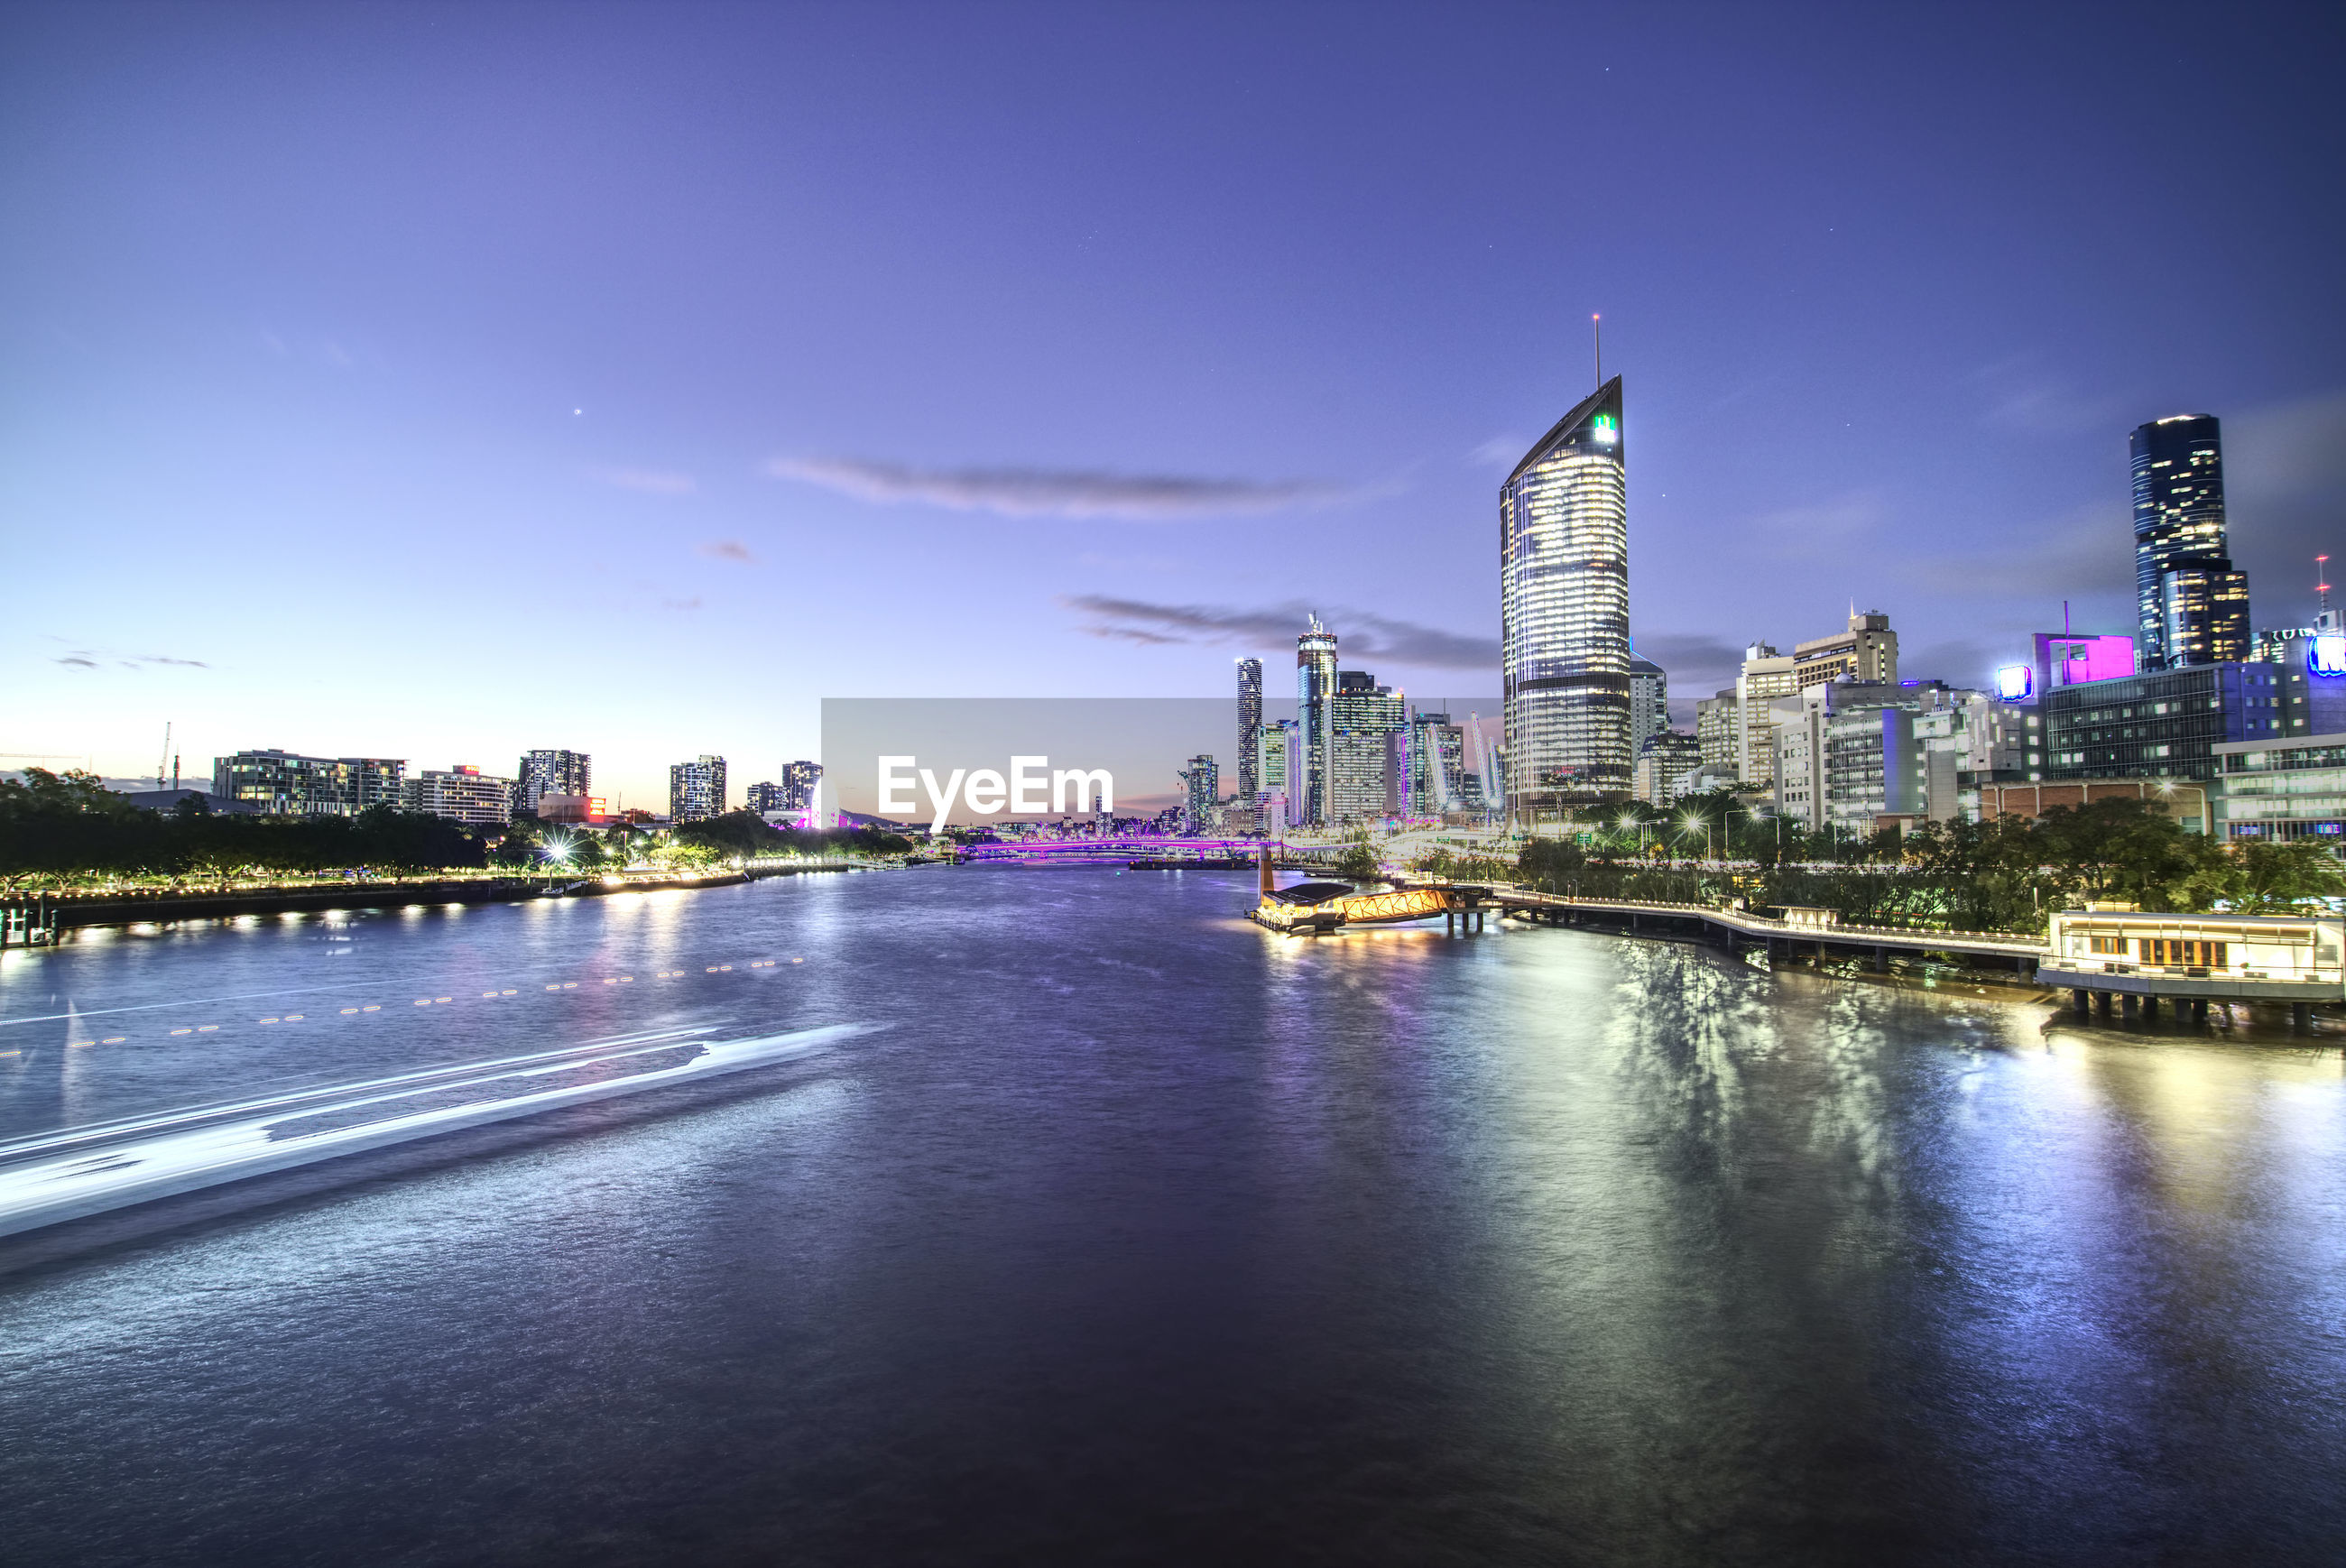 RIVER AND ILLUMINATED BUILDINGS AGAINST SKY